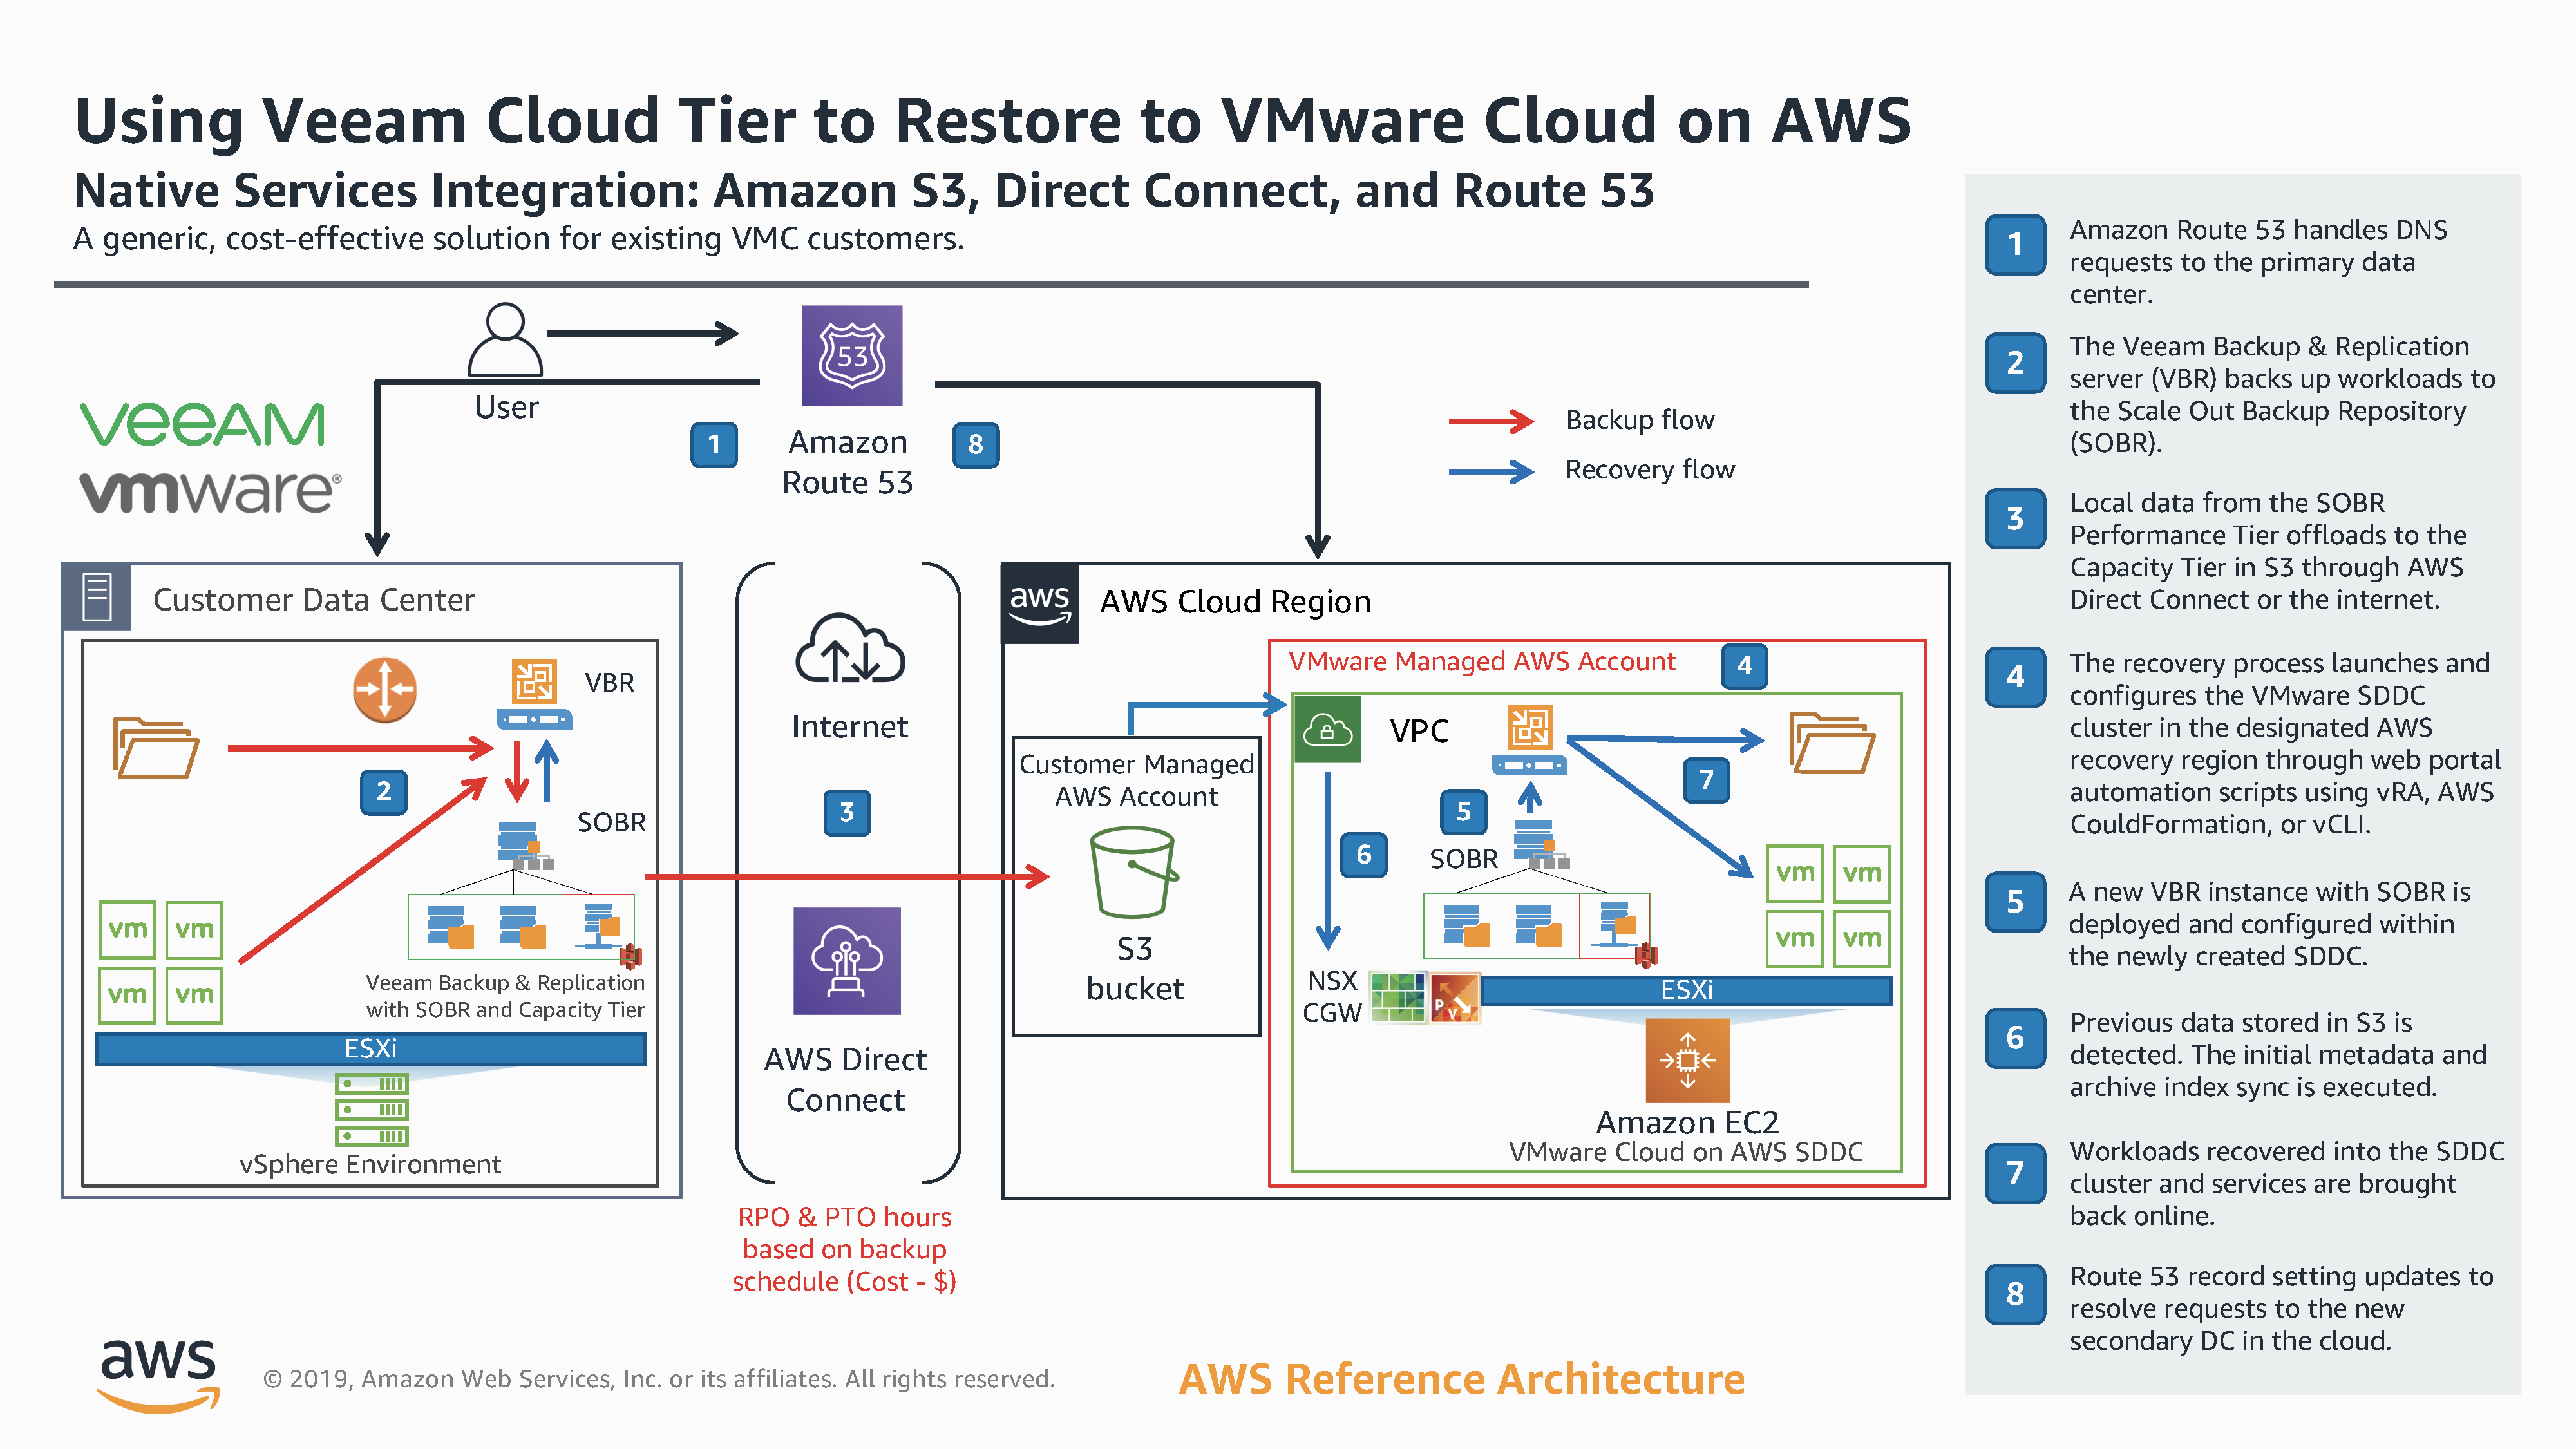 Using_Veeam_Cloud_Tier_to_Restore_to_VMware_Cloud_on_AWS